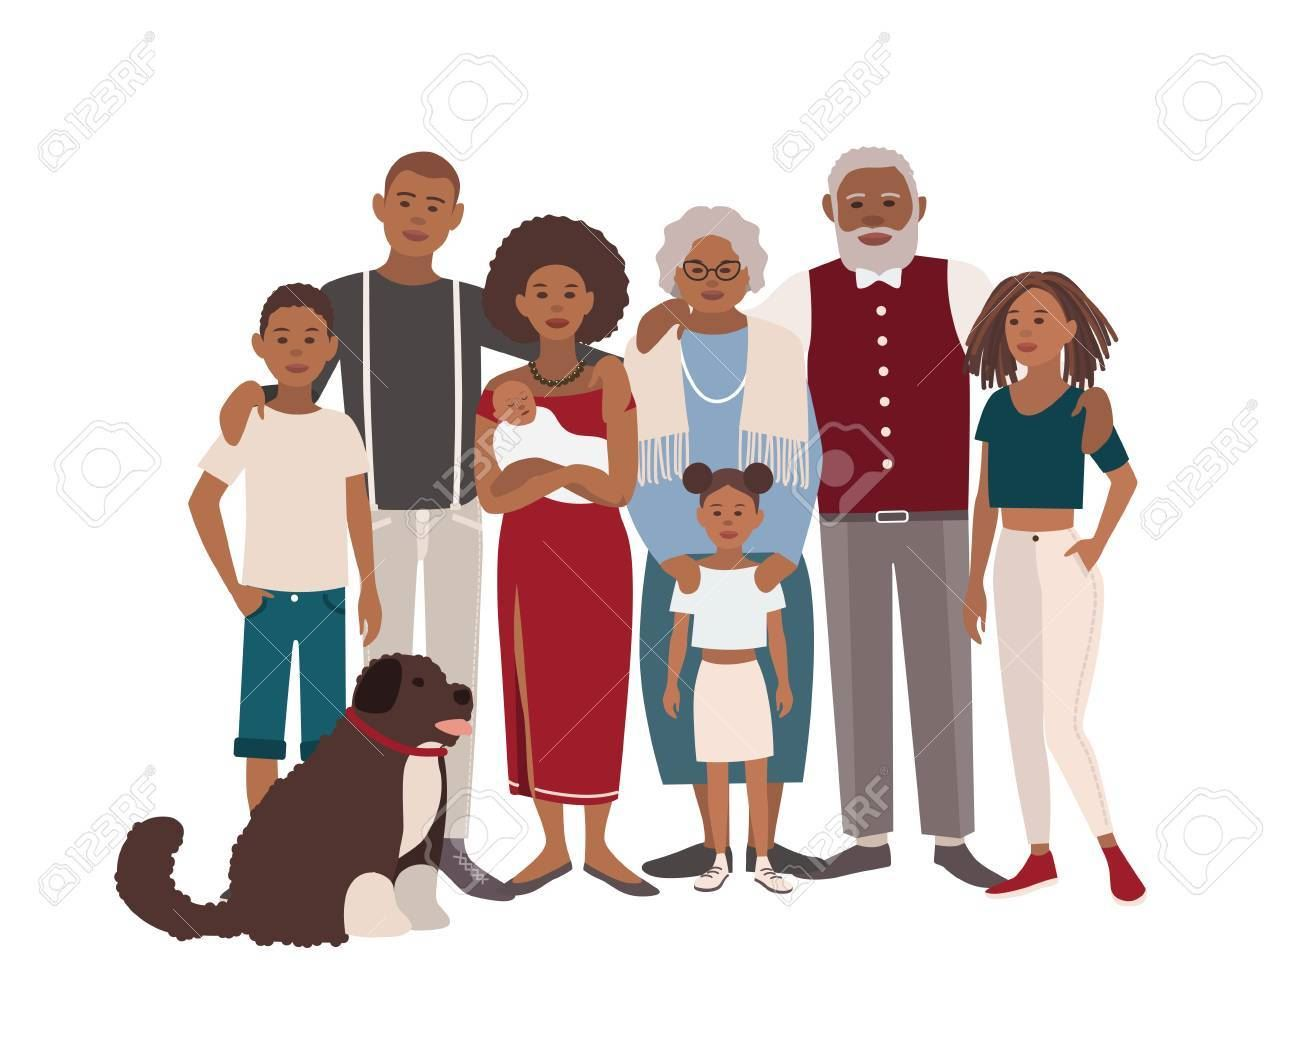 75868528-happy-large-black-family-portrait-father-mother-grandmother-grandfather-sons-daughters-and-